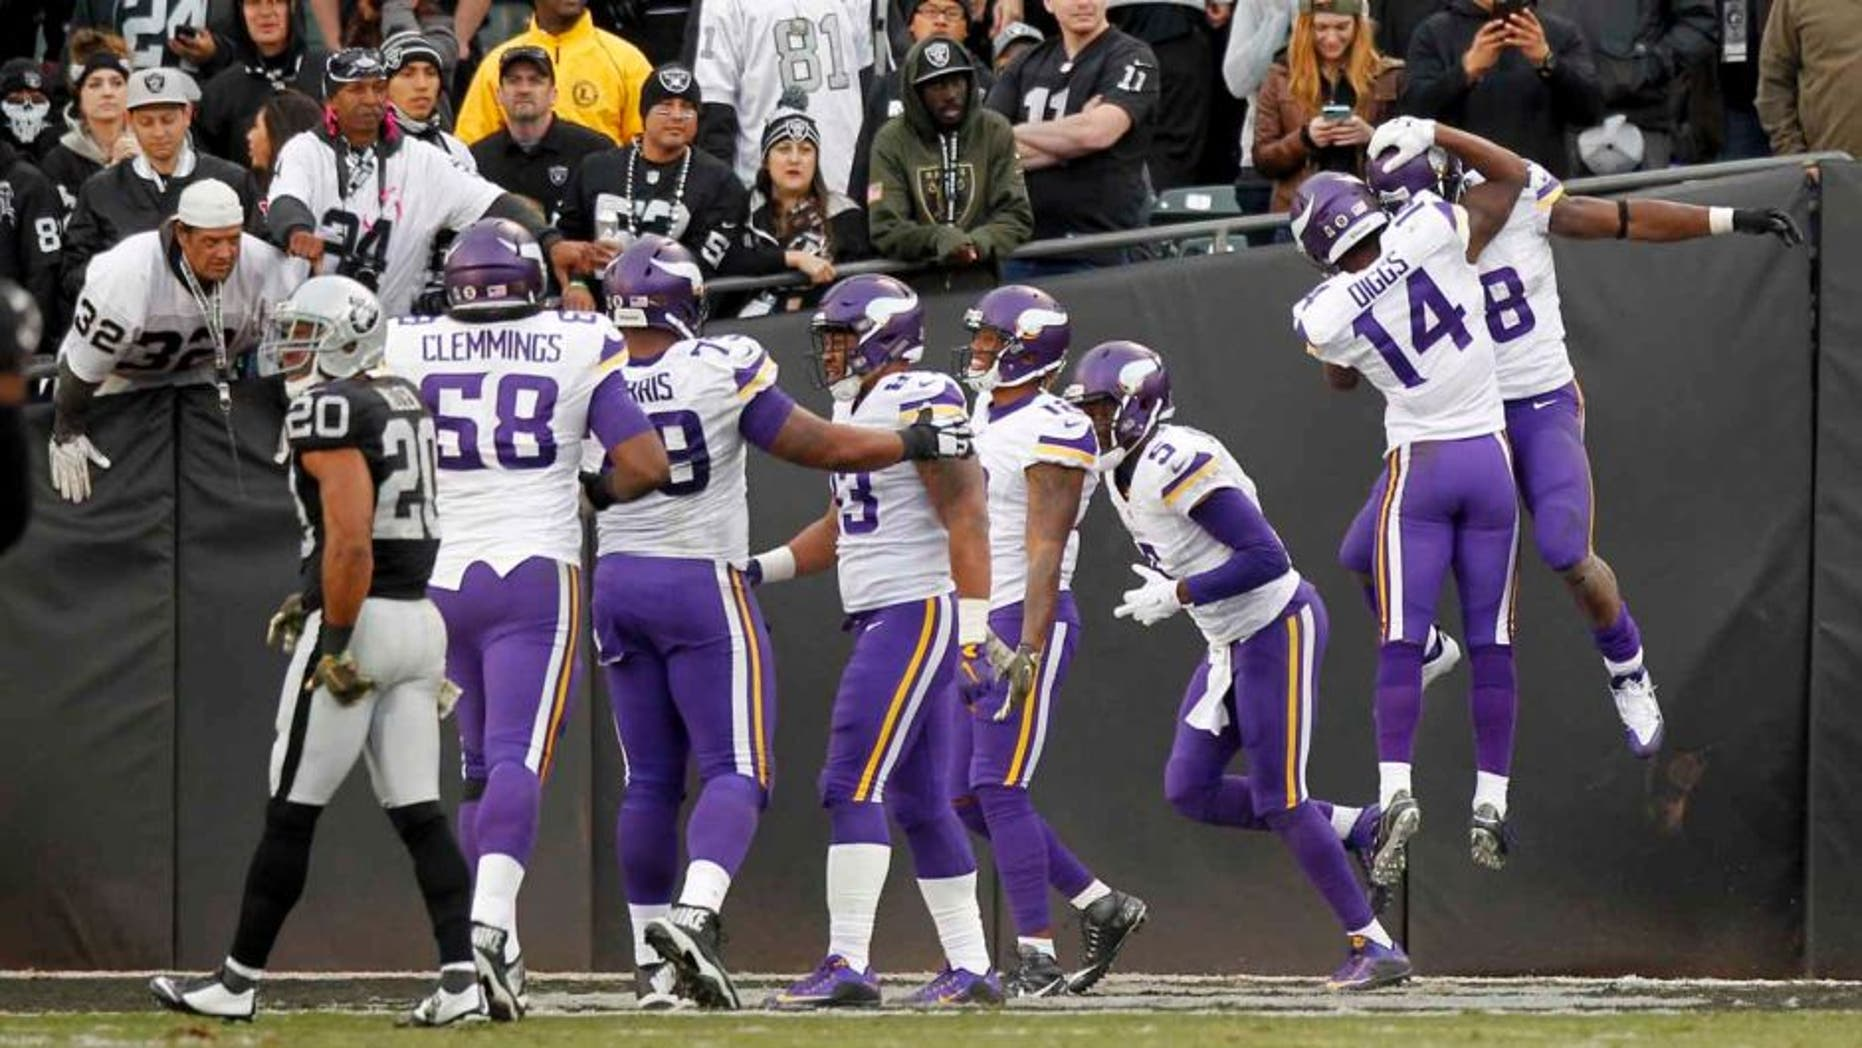 Minnesota Vikings running back Adrian Peterson (right) is congratulated by wide receiver Stefon Diggs (second from right) after rushing for a touchdown against the Oakland Raiders in the fourth quarter at O.co Coliseum in Oakland, Calif., on Sunday, Nov. 15, 2015. The Vikings won 30-14.